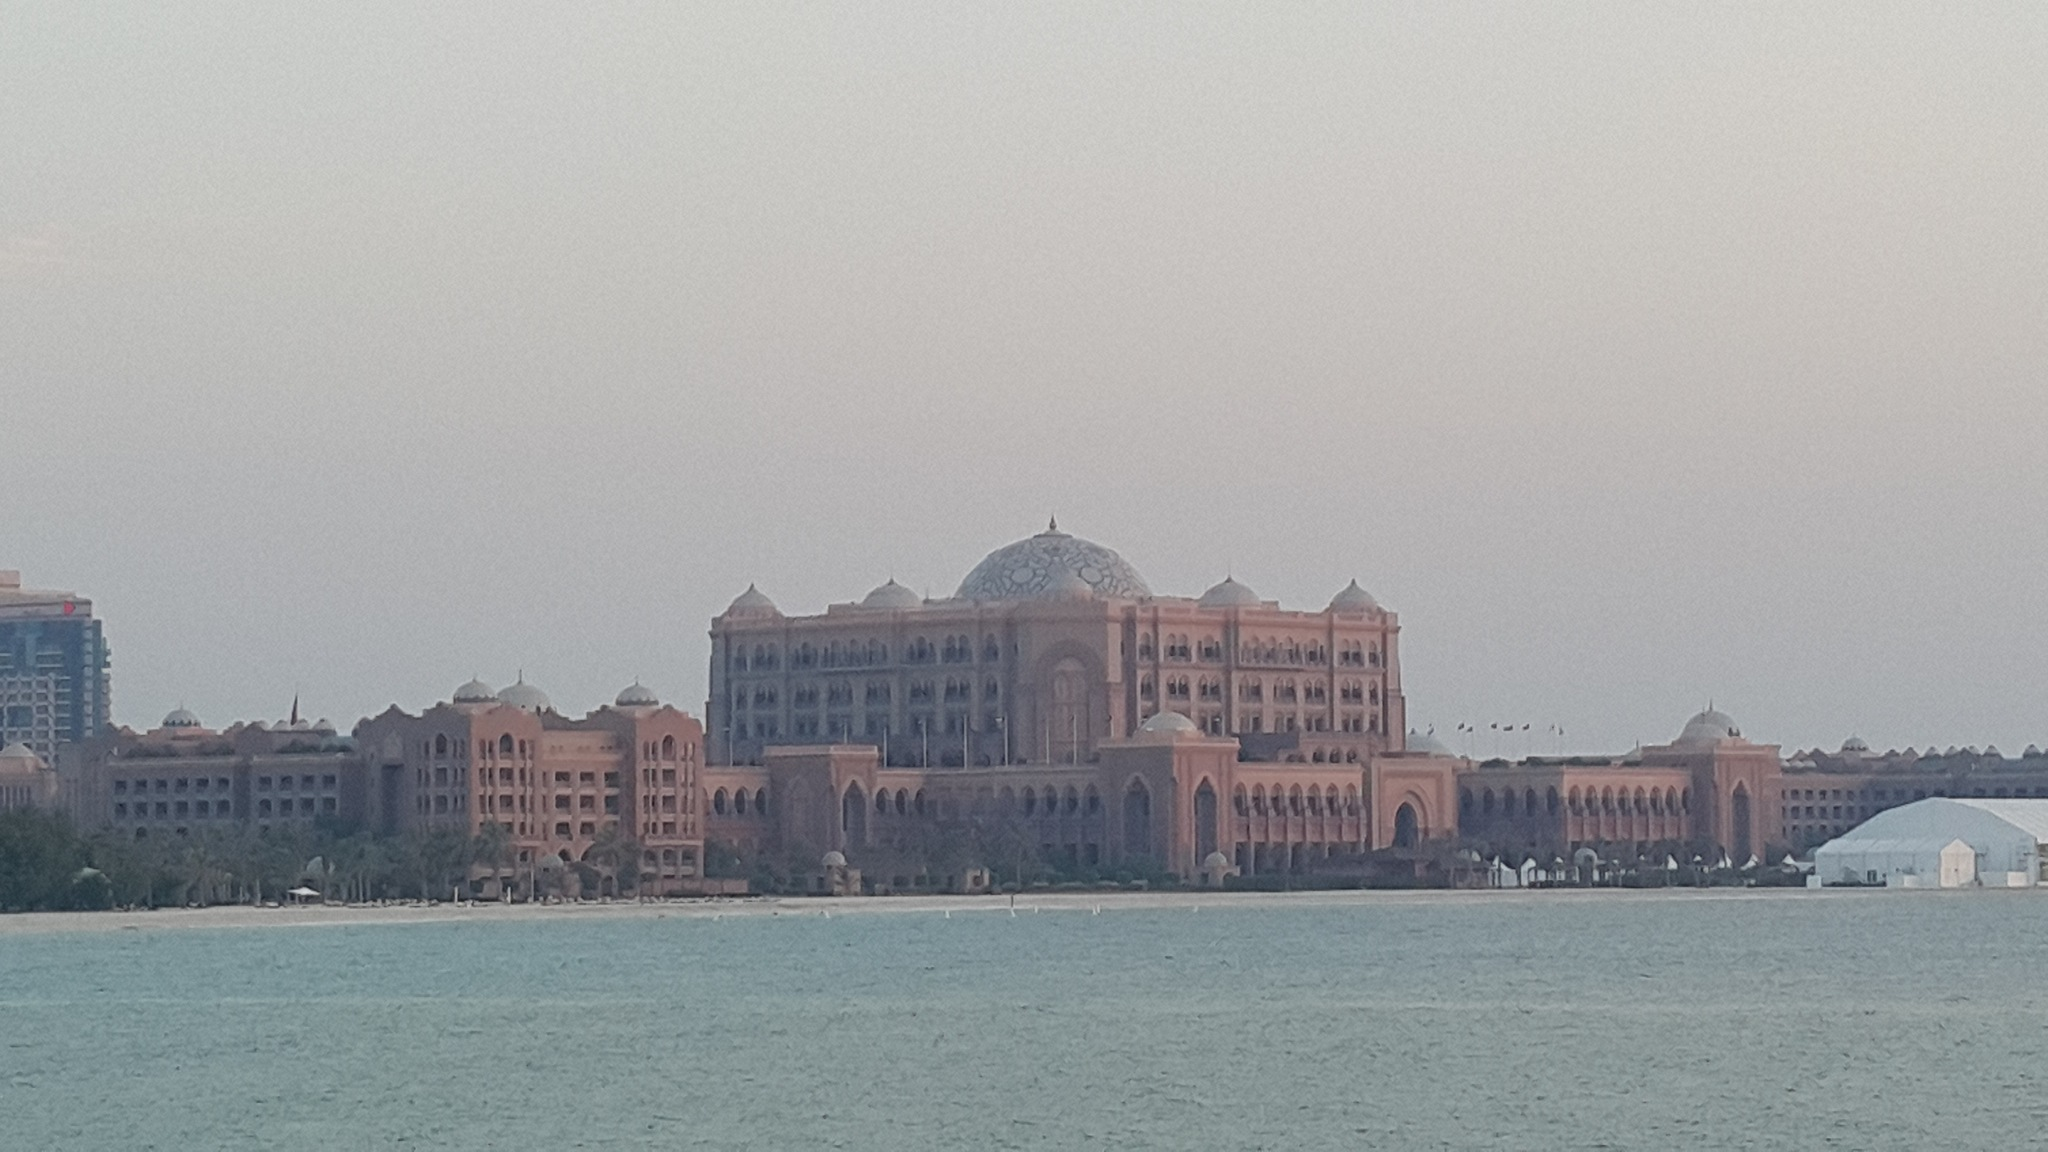 The Emirates Palace Hotel by Haseeb Ahmed